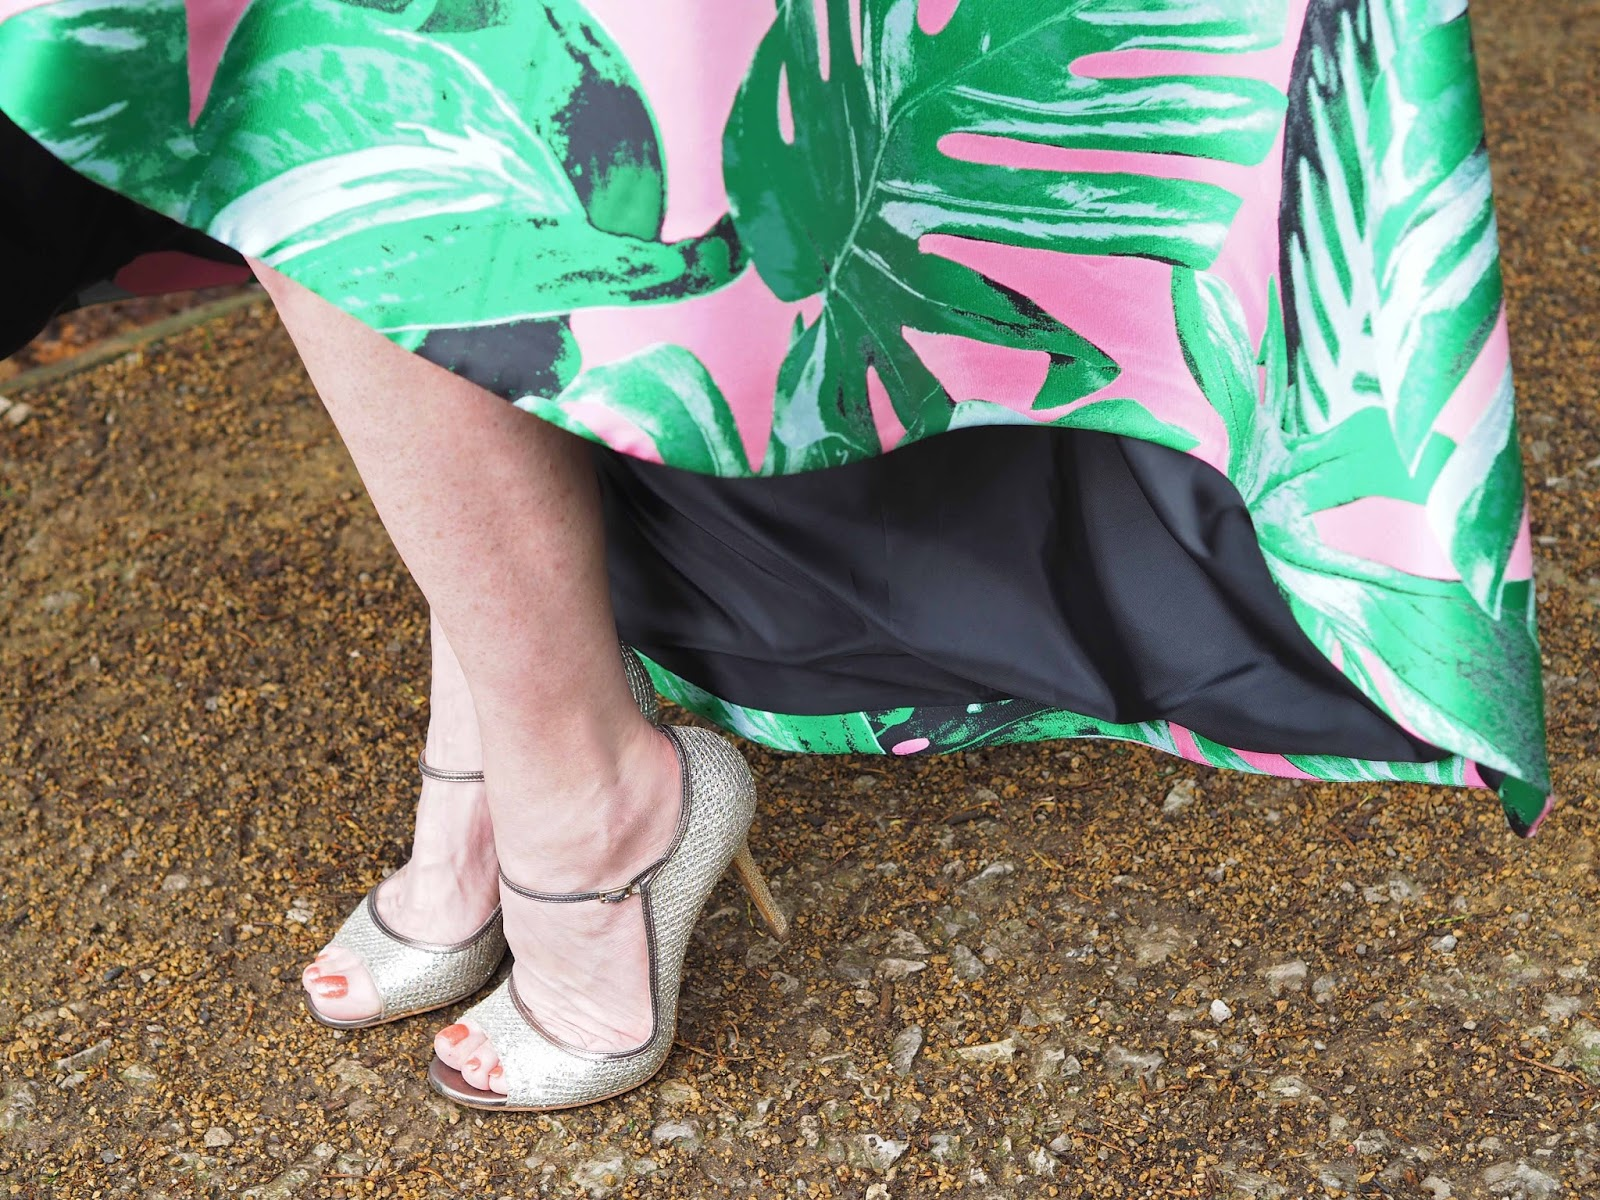 Asymmetric hem statement skirt, pink and black with large leaves, champagne glitter Jimmy Choo Tahiti sandals, occasionwear